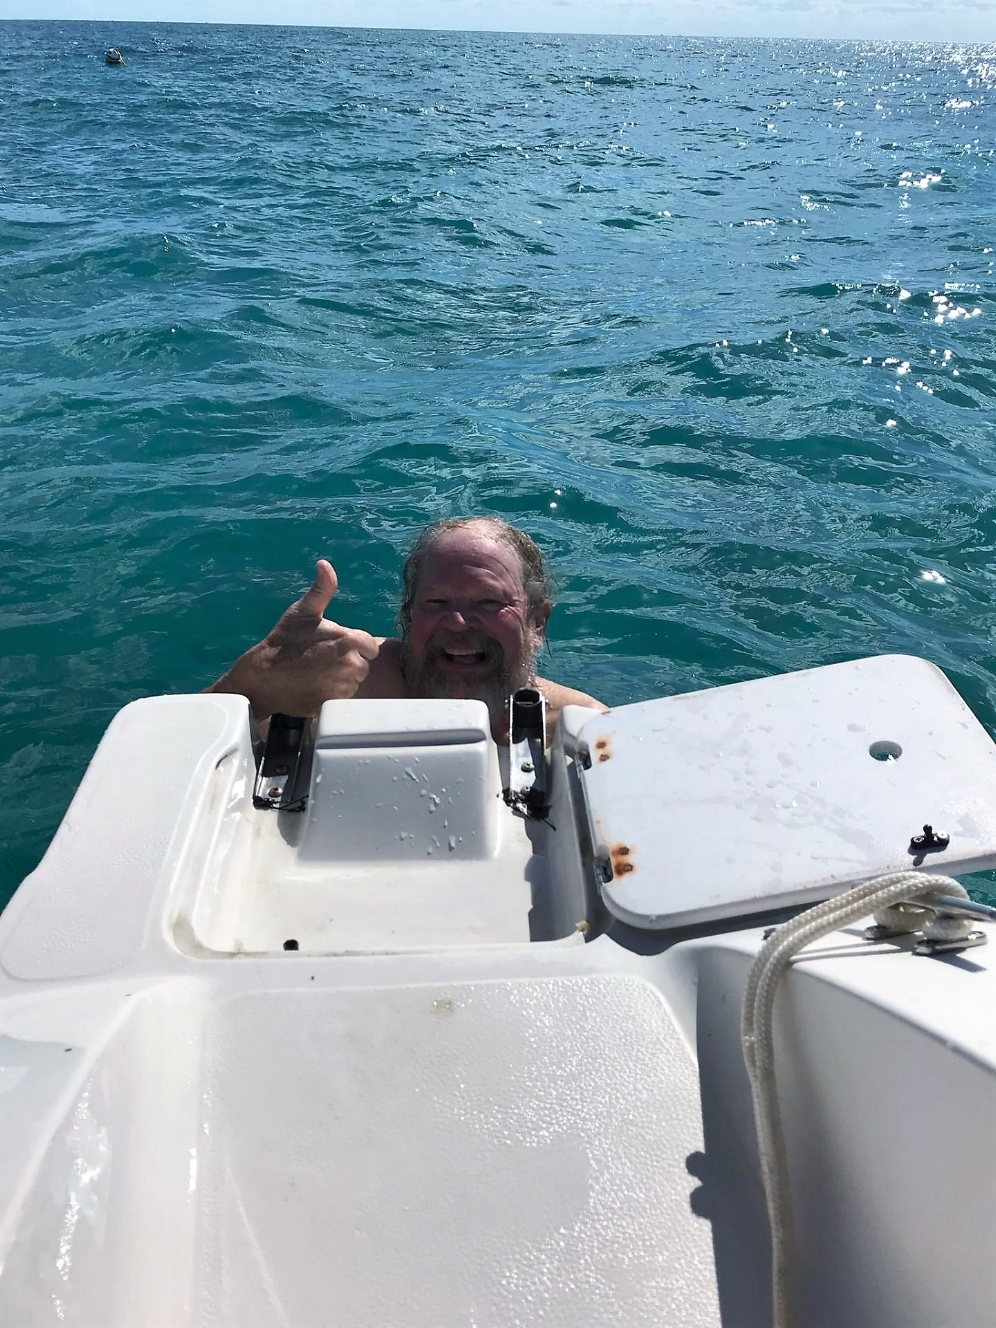 George L. Heinrich giving the thumbs up after finding a hawksbill sea turtle (Eretmochelys imbricata) in the Florida Keys. Photograph by Bob Krause.